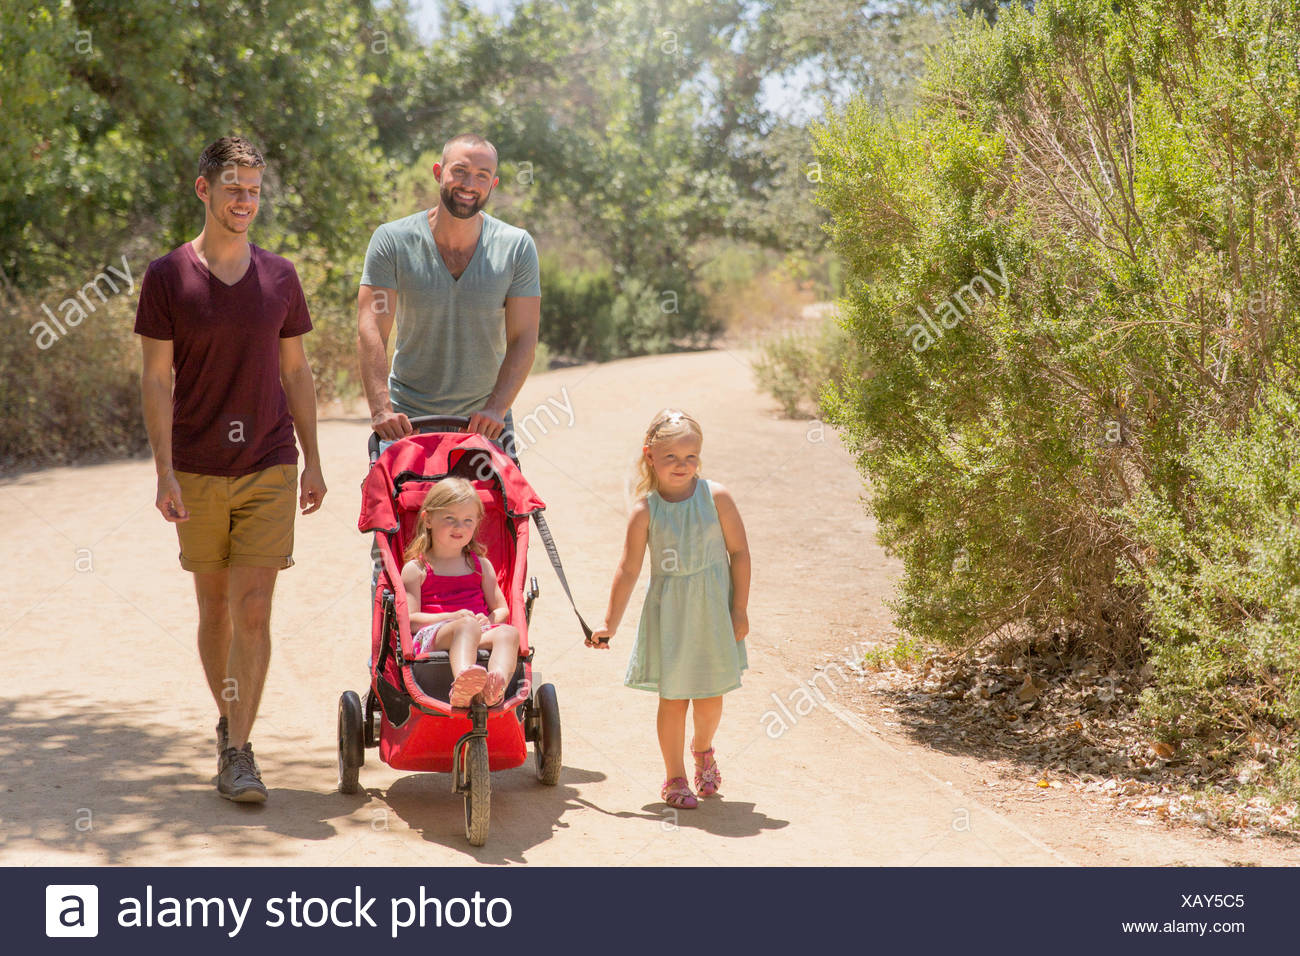 Male couple strolling with two daughters in park - Stock Image